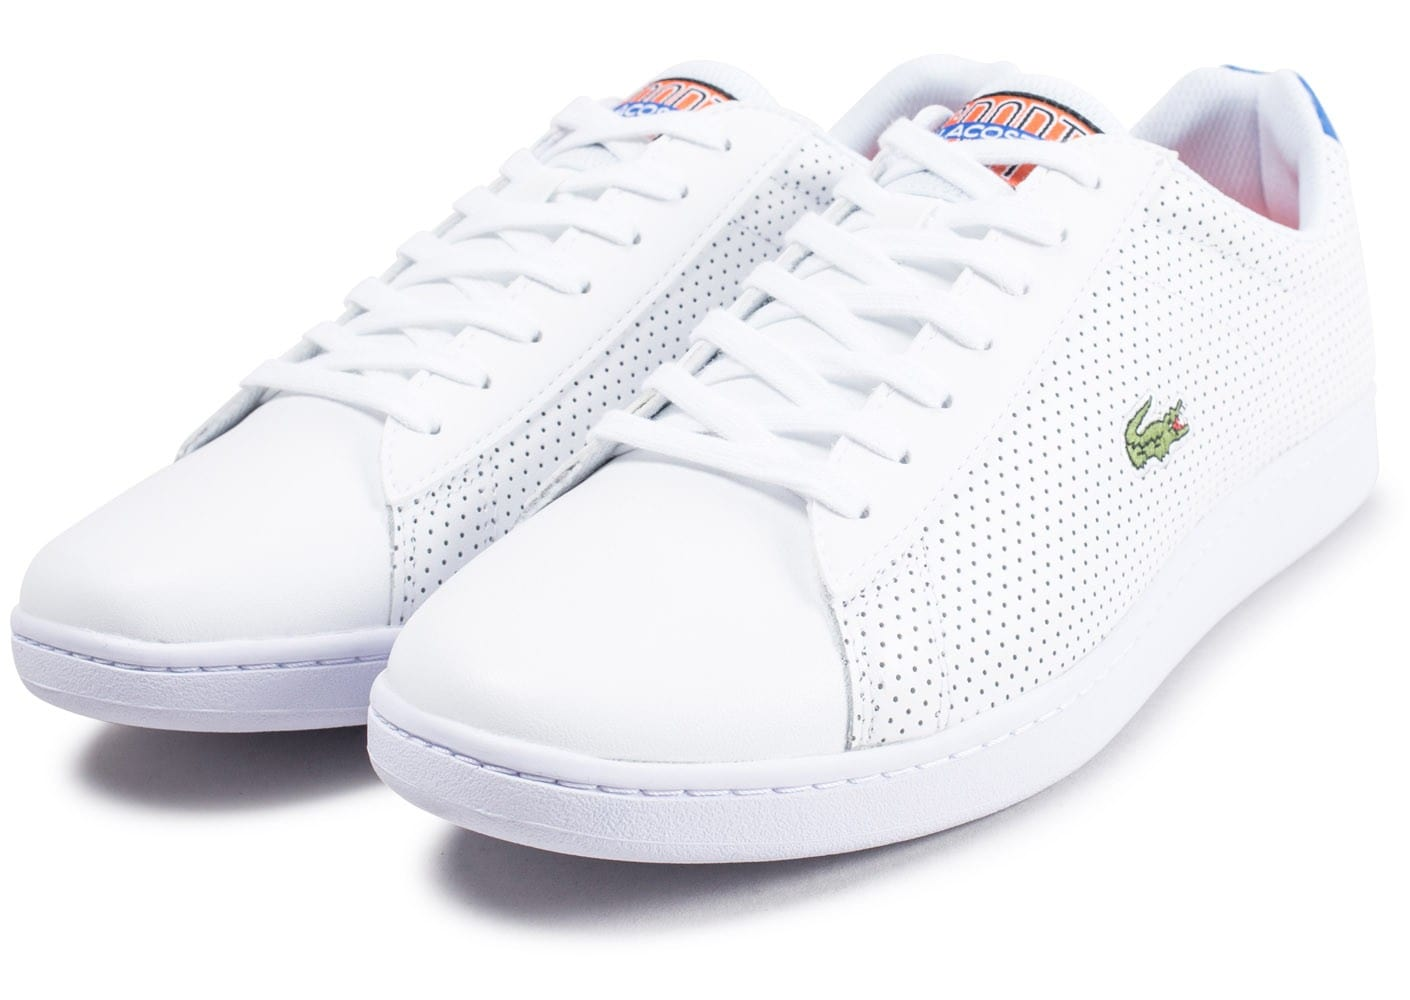 e66cdd50eeb ... Chaussures Lacoste Carnaby Evo blanche et bleu turquoise vue intérieure  ...